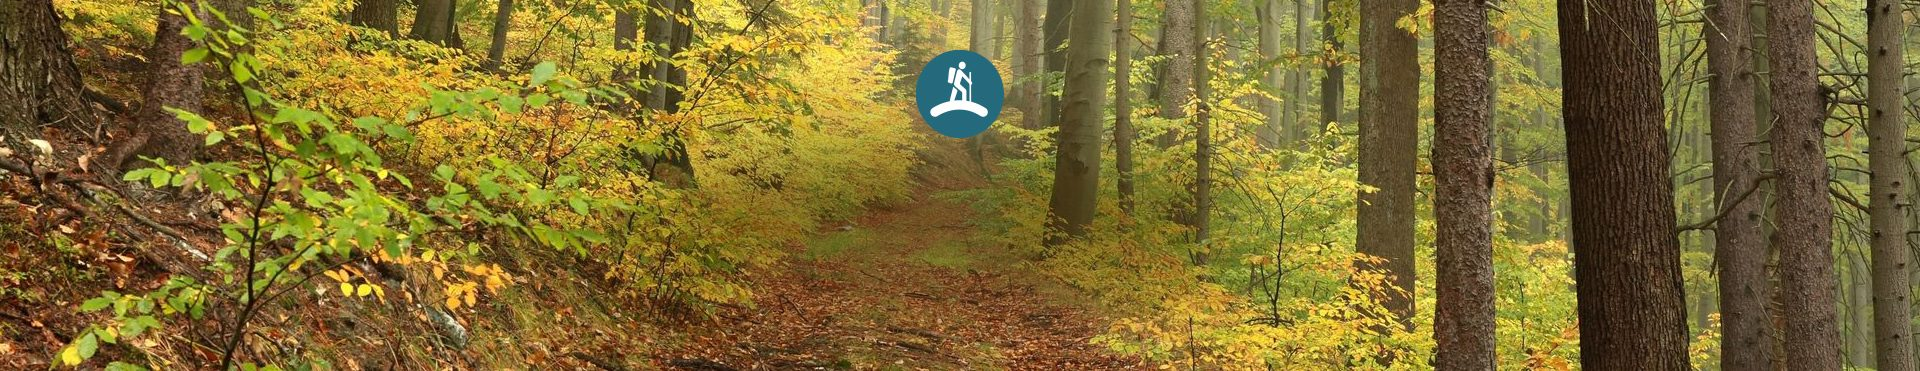 Trails and Recreation